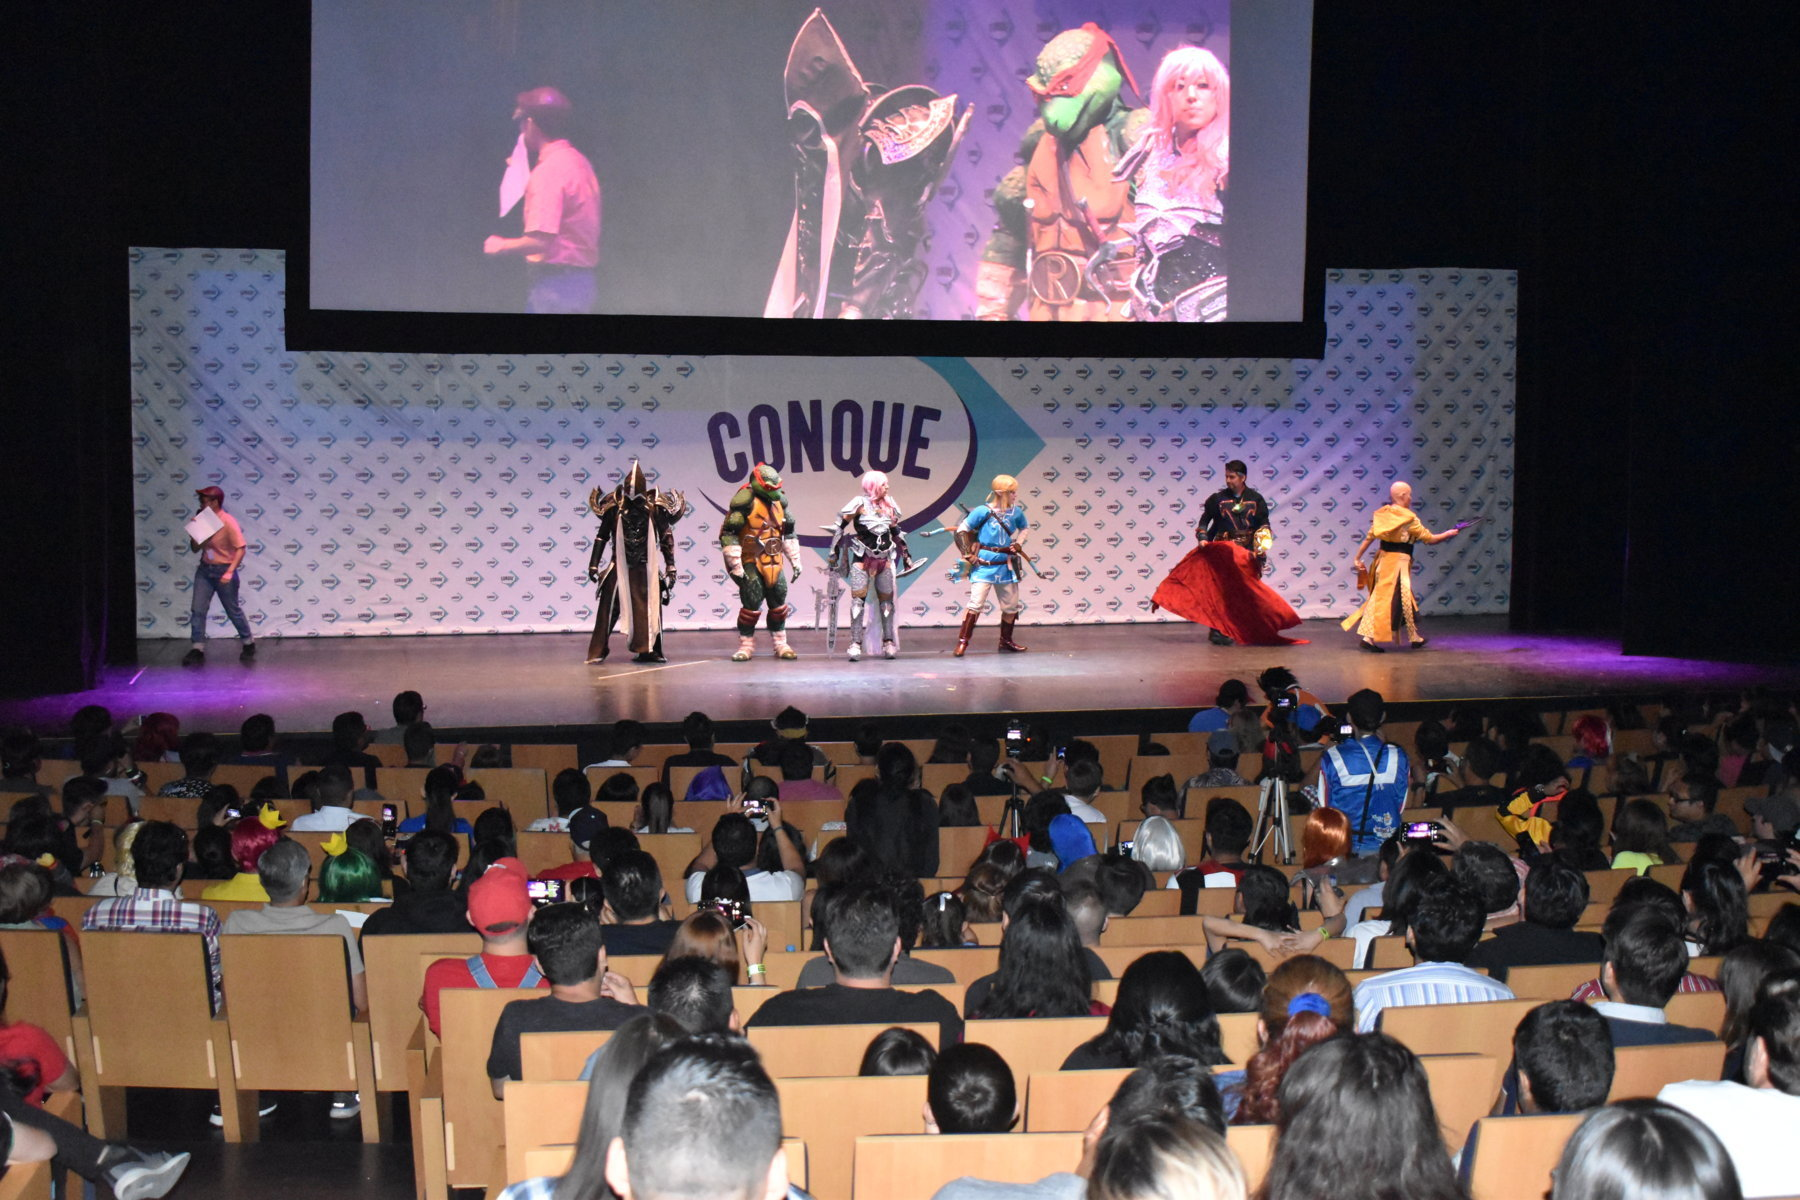 Christie Wows Audiences at the Mexican Comic Convention With its